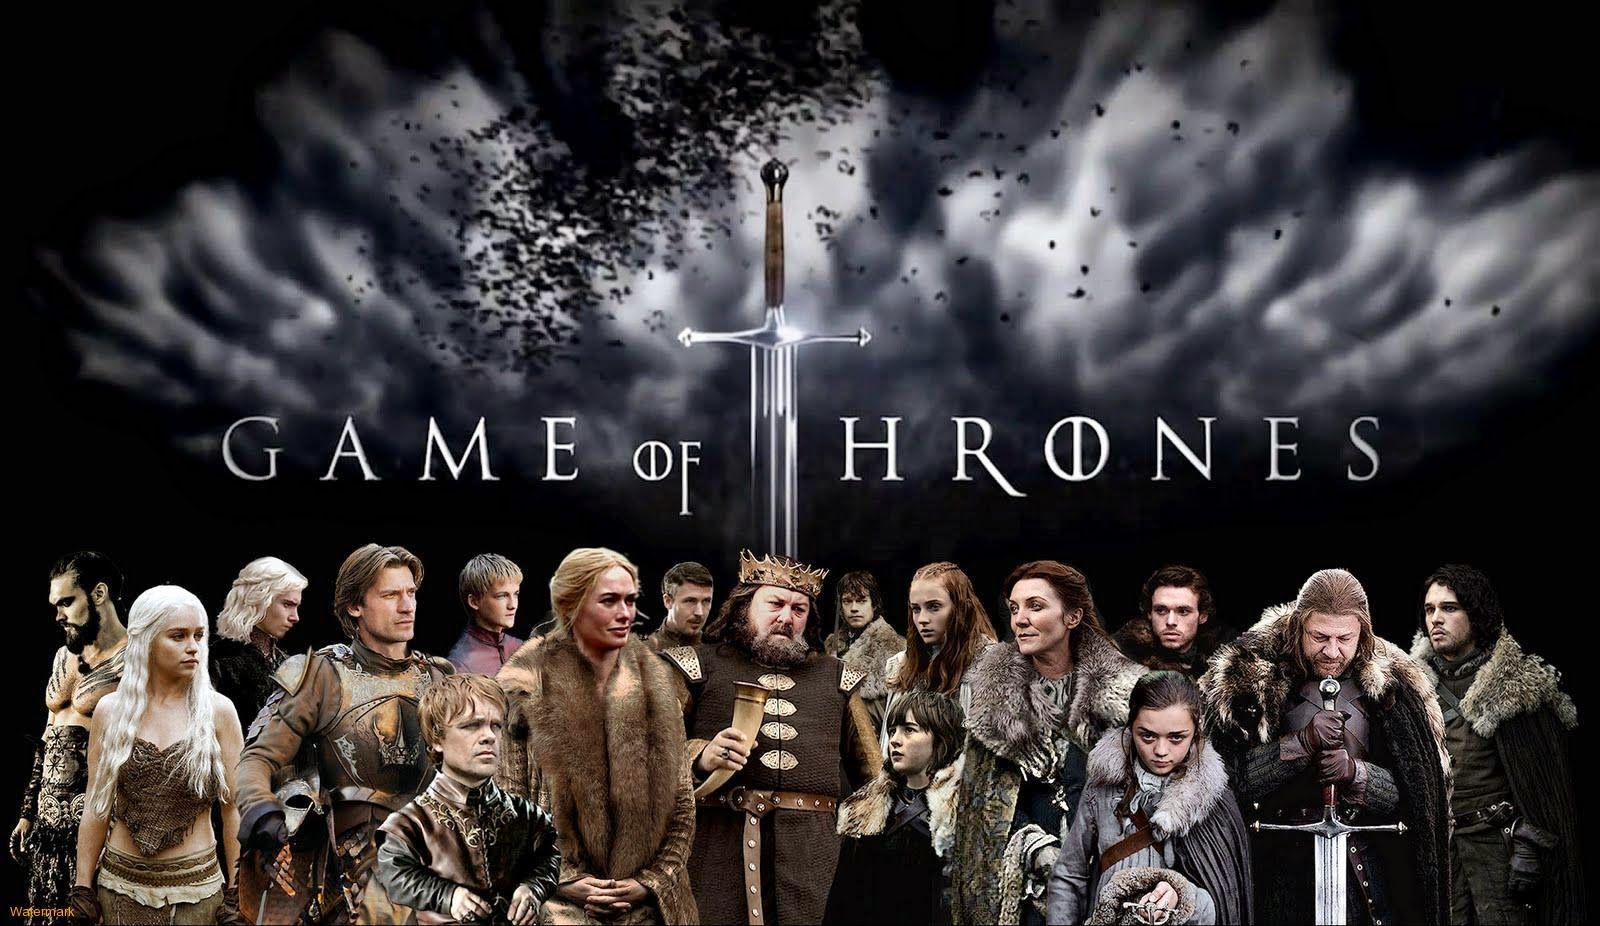 Game of Thrones Kaleesi serie stark lanister